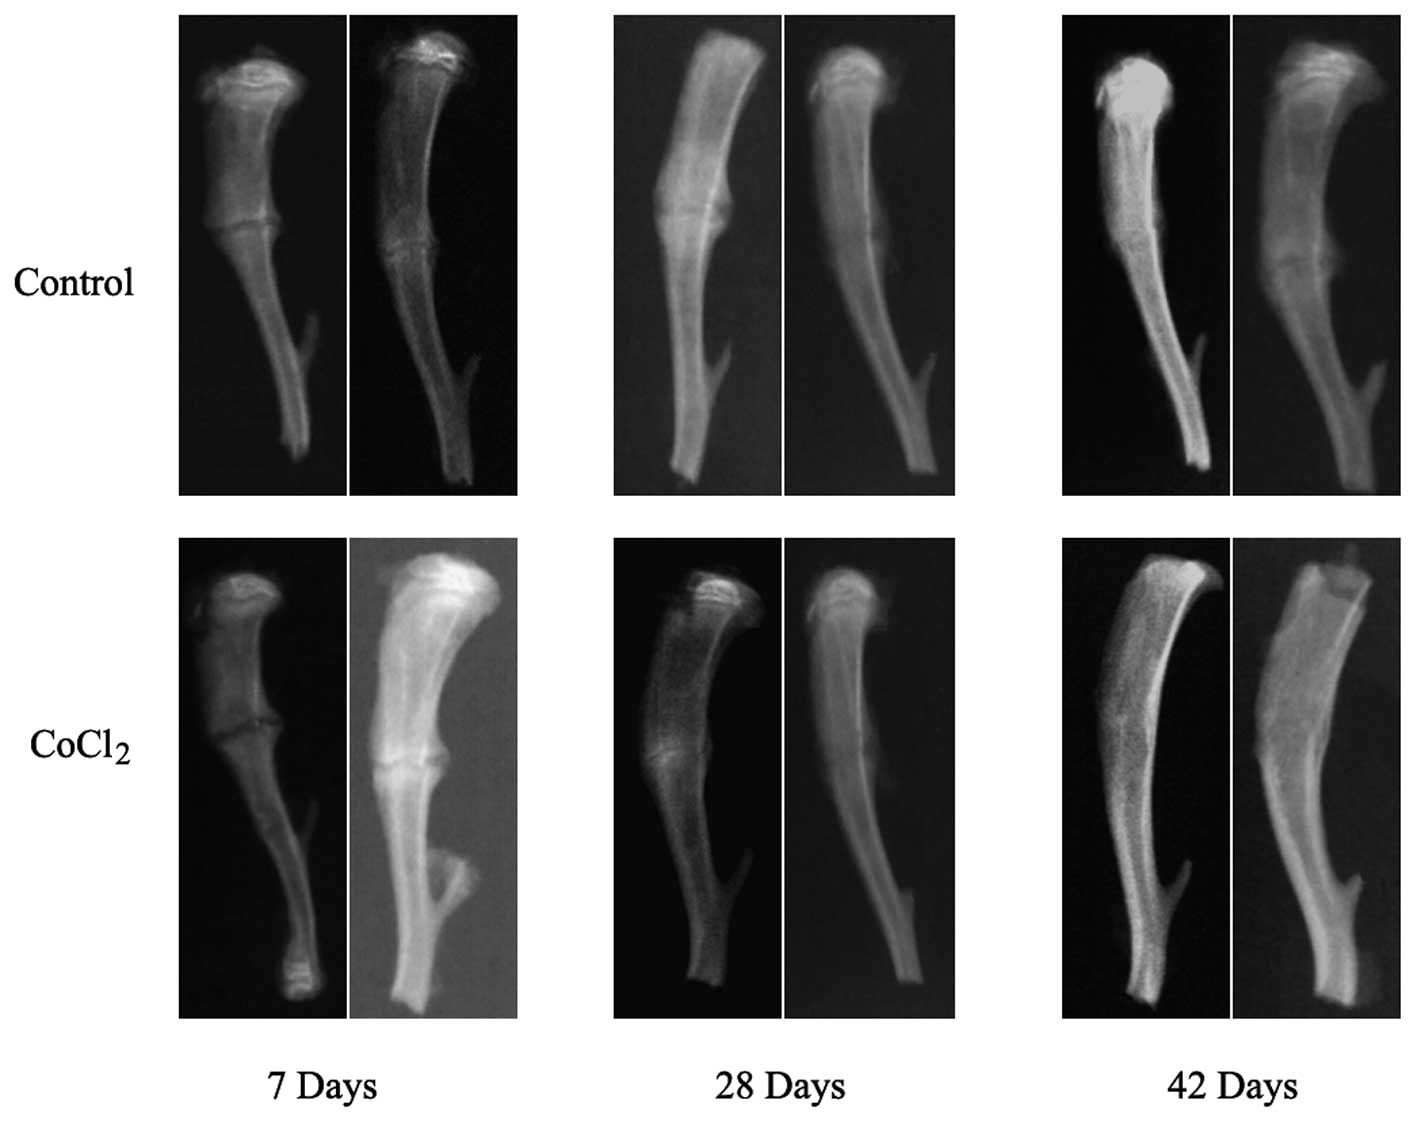 Effect Of Cocl2 On Fracture Repair In A Rat Model Of Bone Fracture